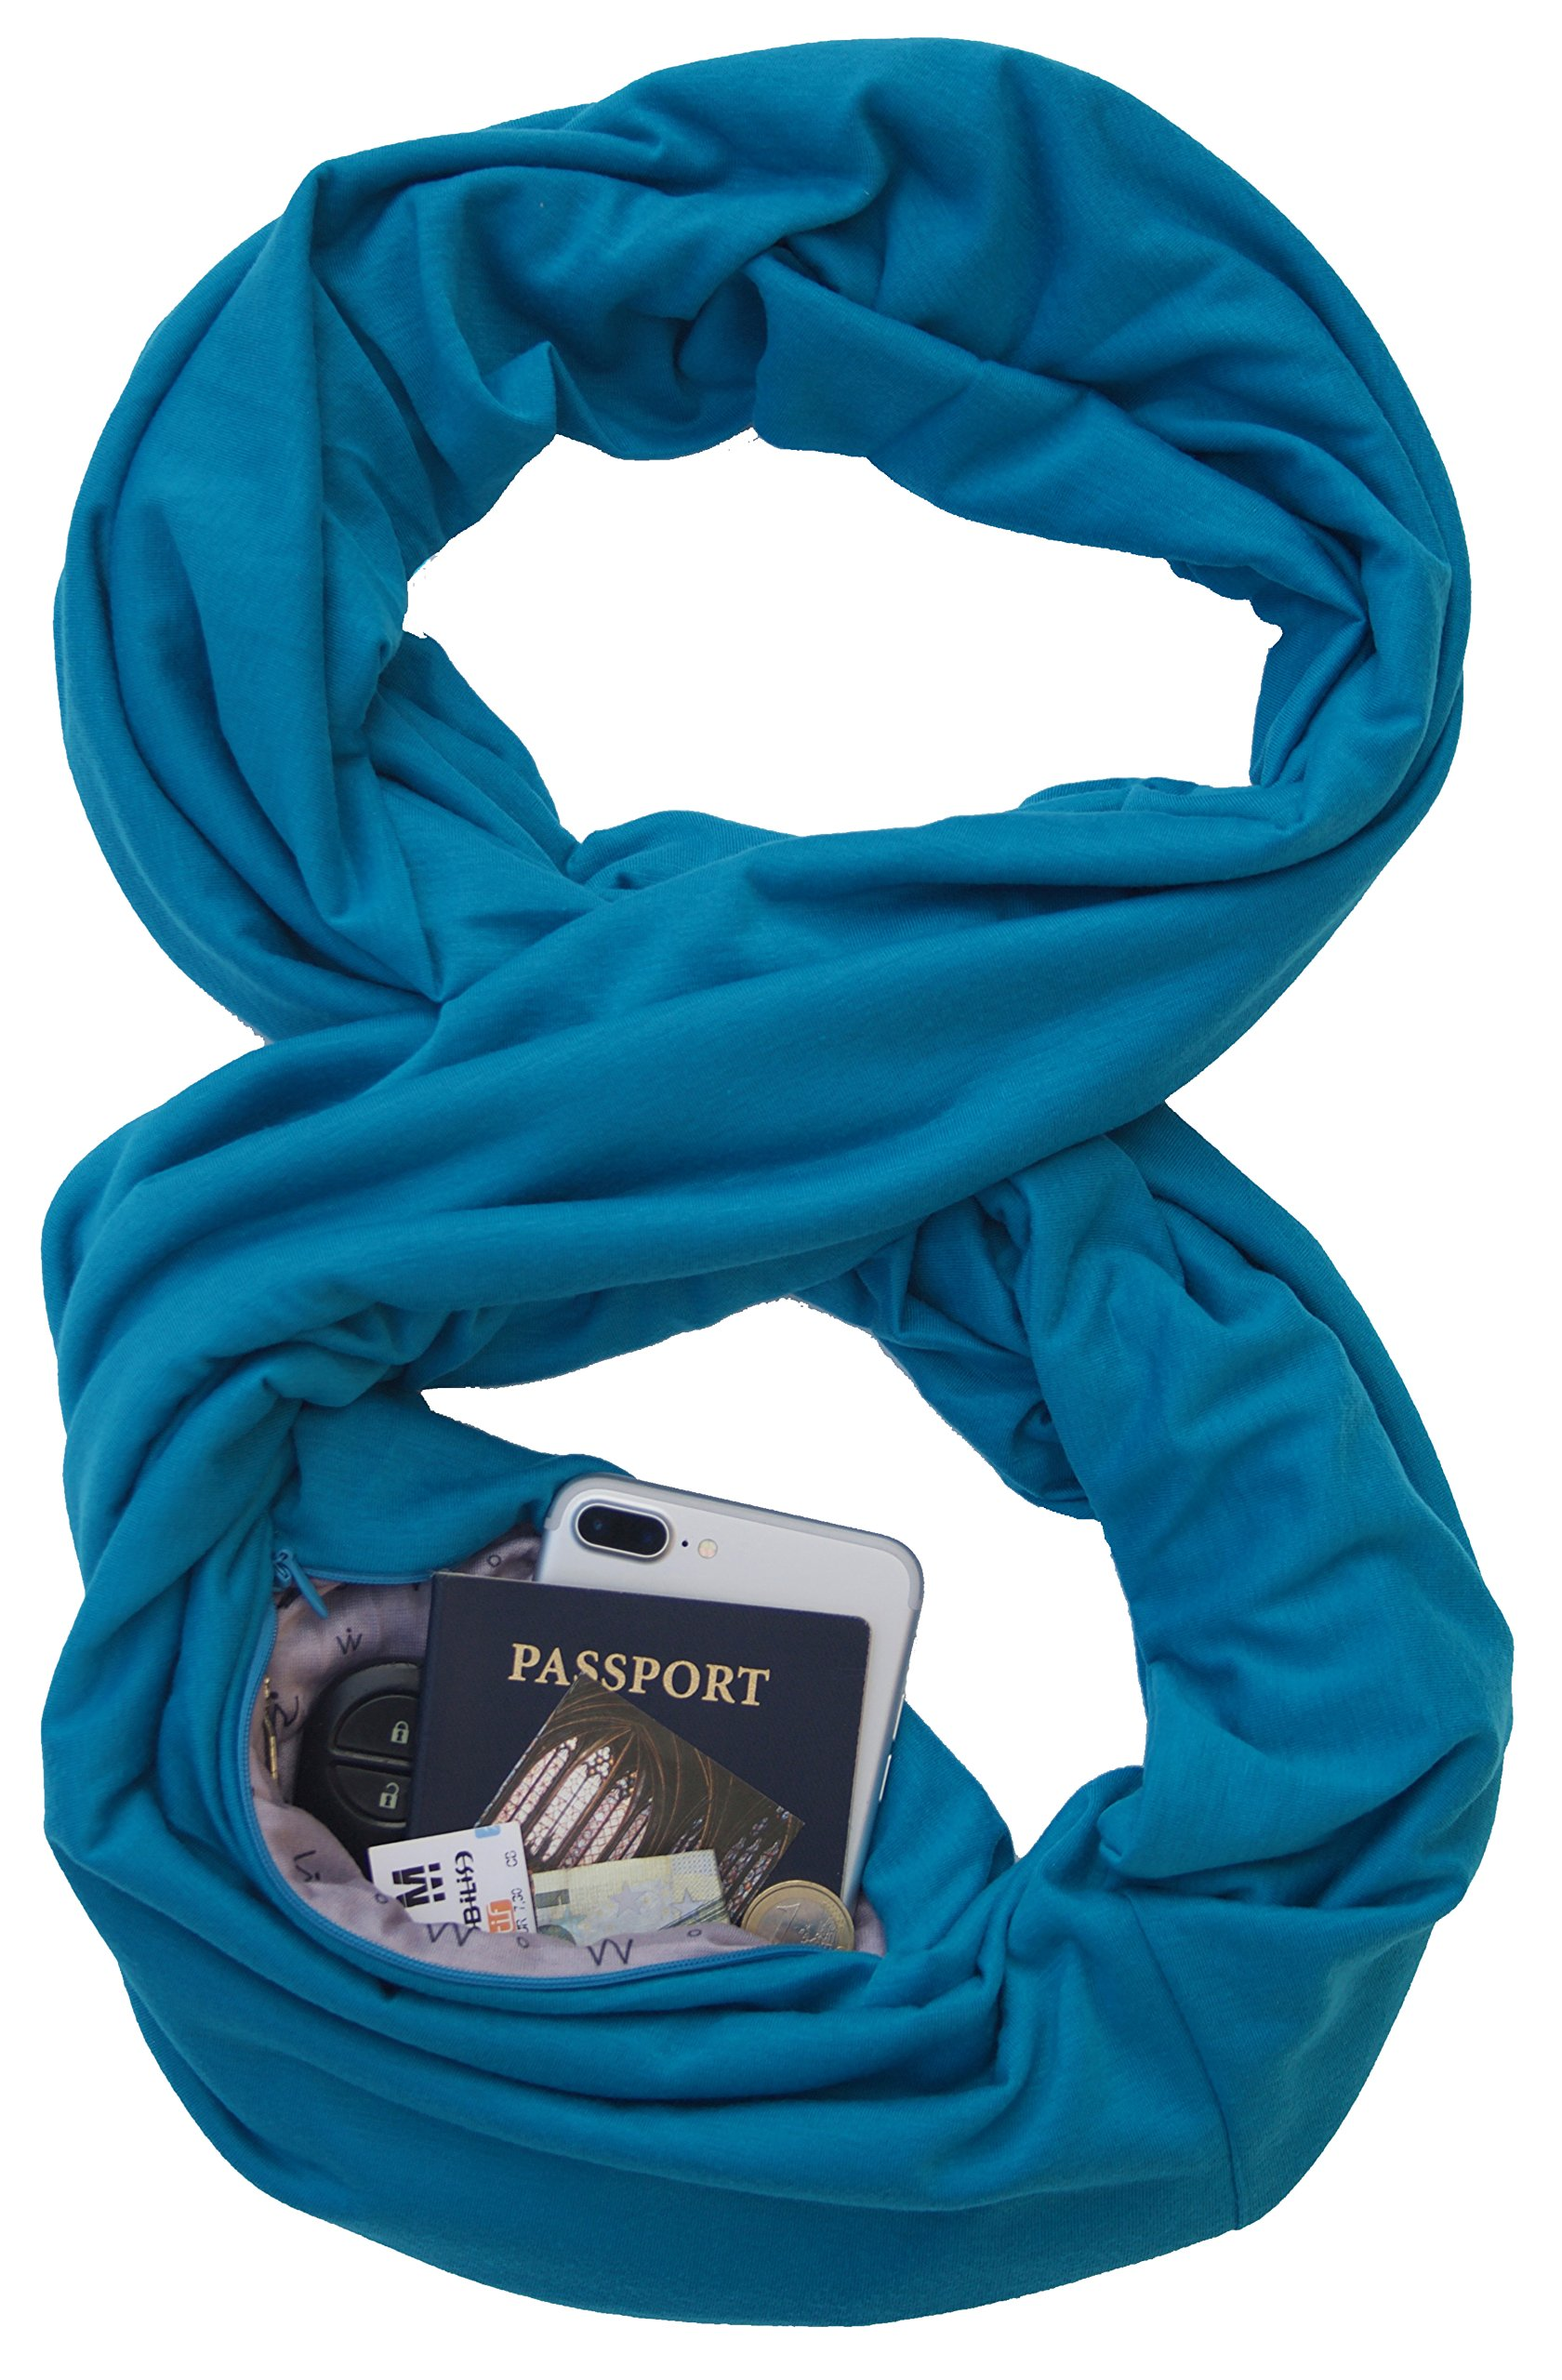 TRAVEL SCARF by WAYPOINT GOODS//Infinity Scarf with Hidden Pocket (Peacock)